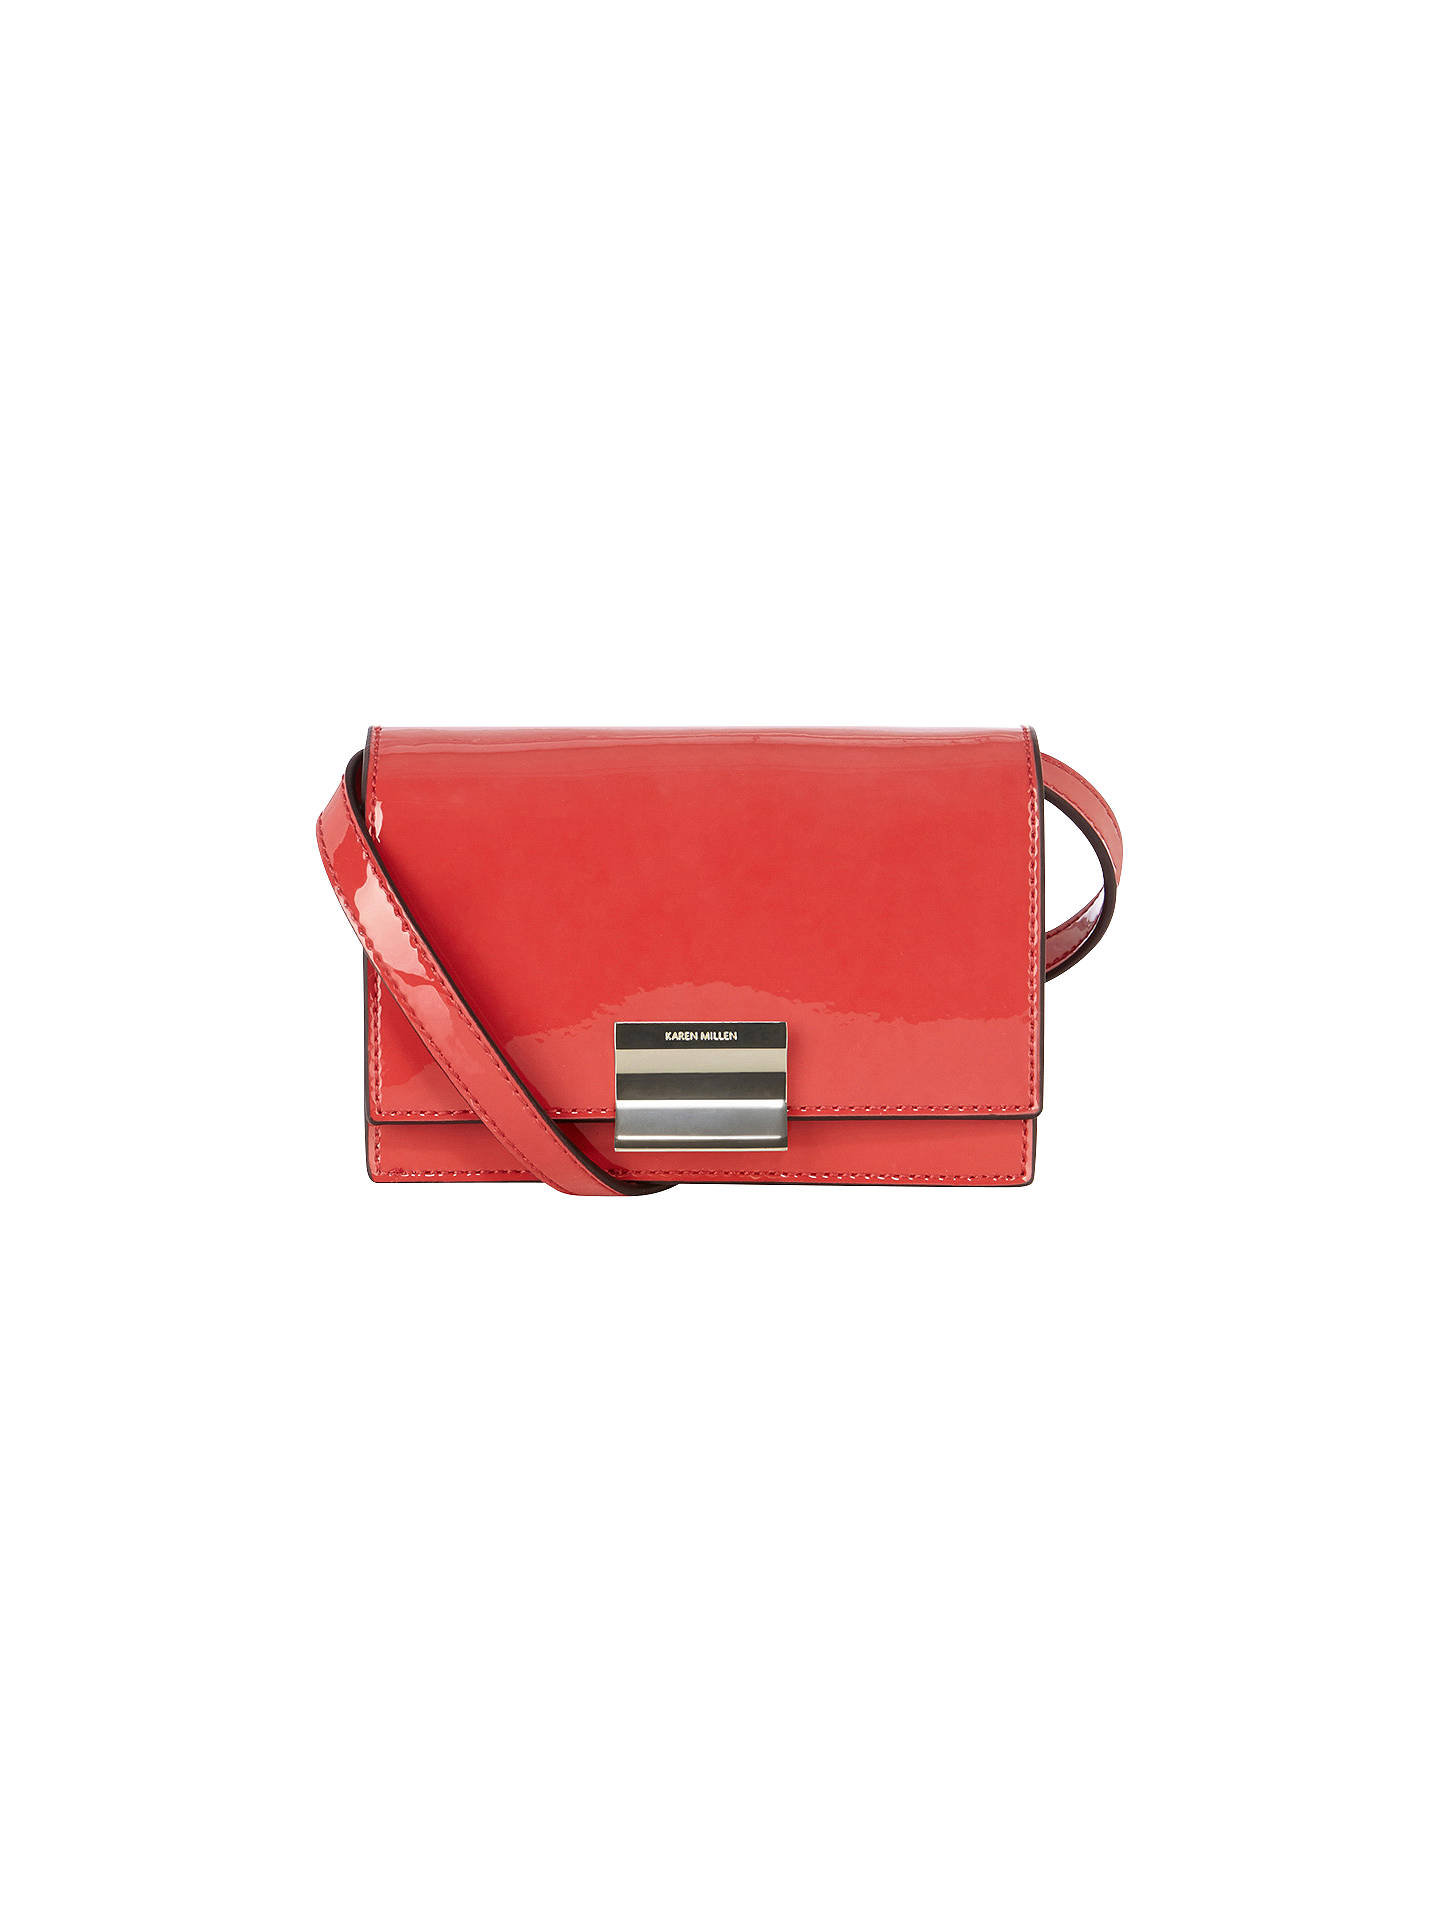 3c7f26e4c1 Buy Karen Millen Colourful Patent Mini Bag, Pink Online at johnlewis.com ...